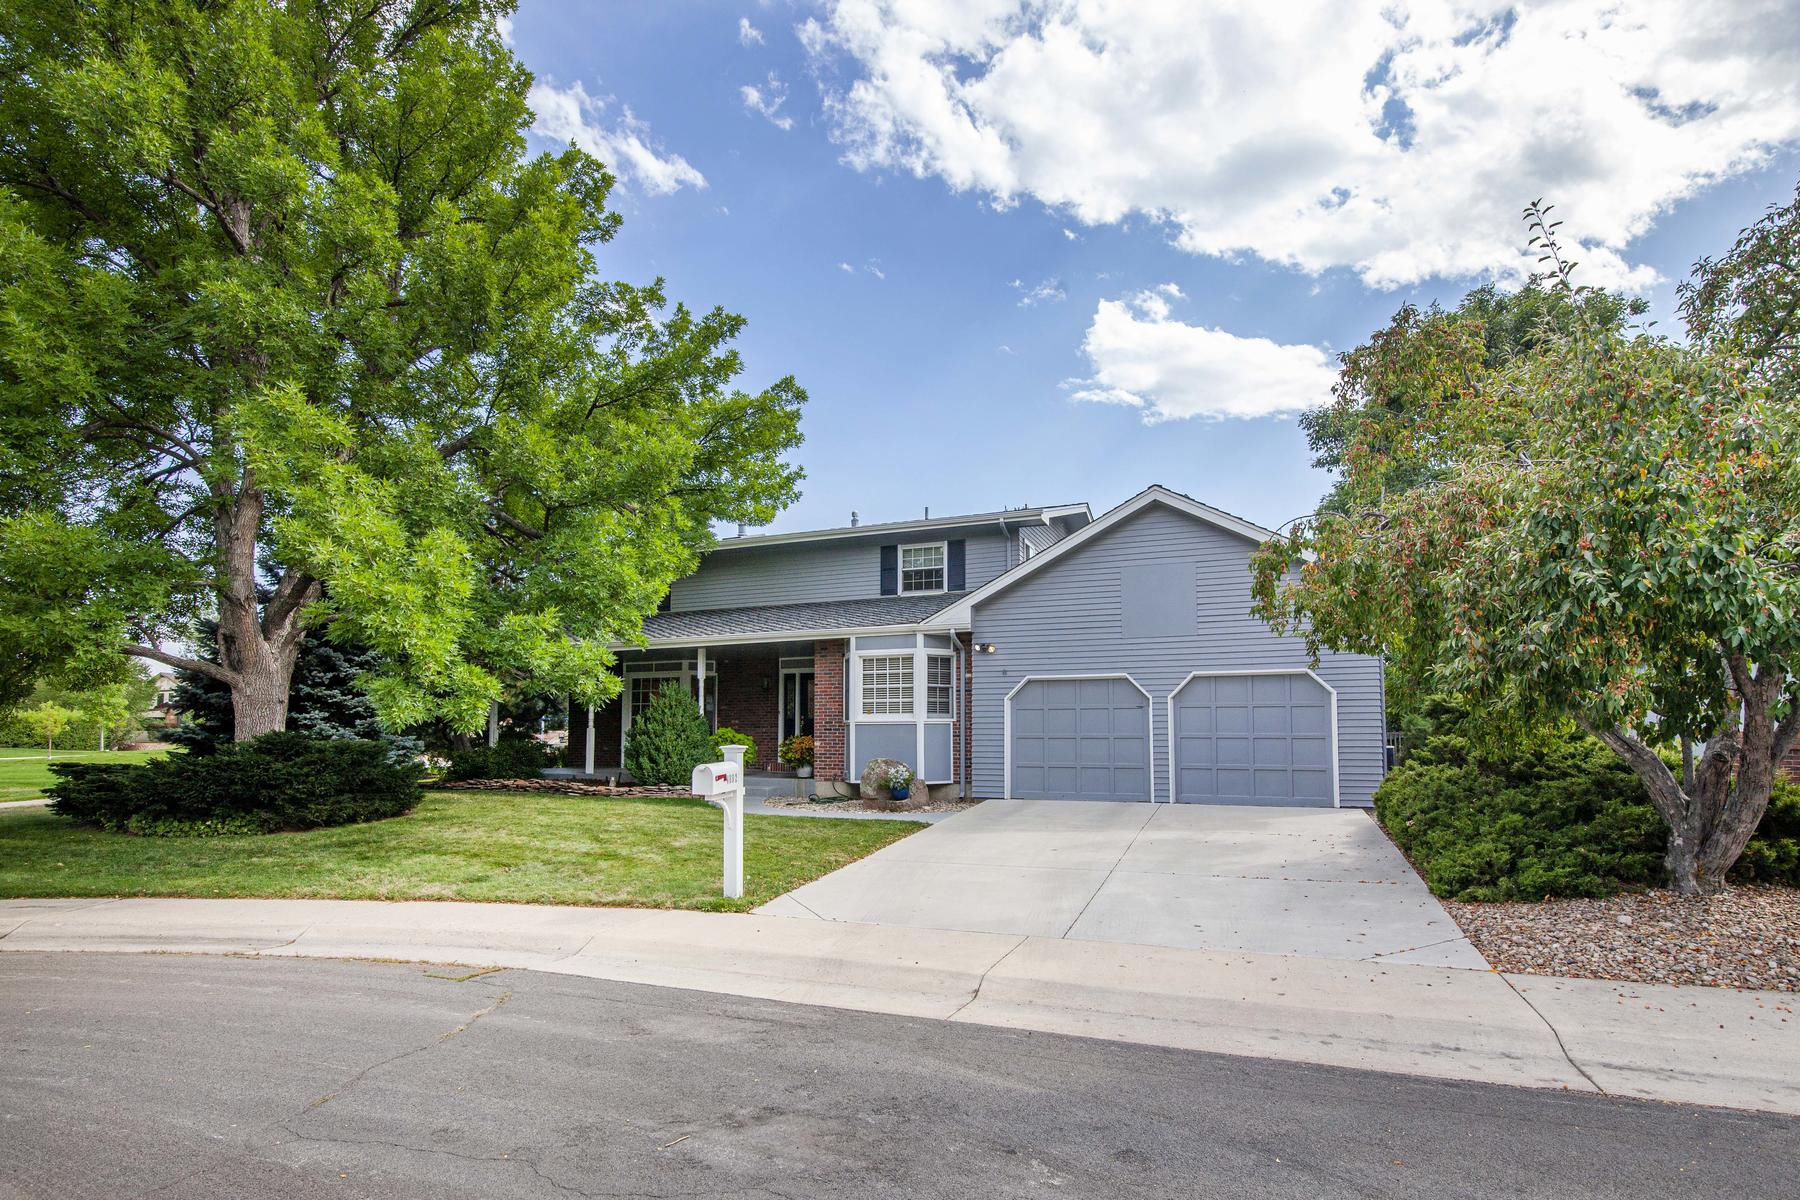 Single Family Homes for Sale at Prime Arapahoe Ridge Location 4892 Kellogg Cir Boulder, Colorado 80303 United States